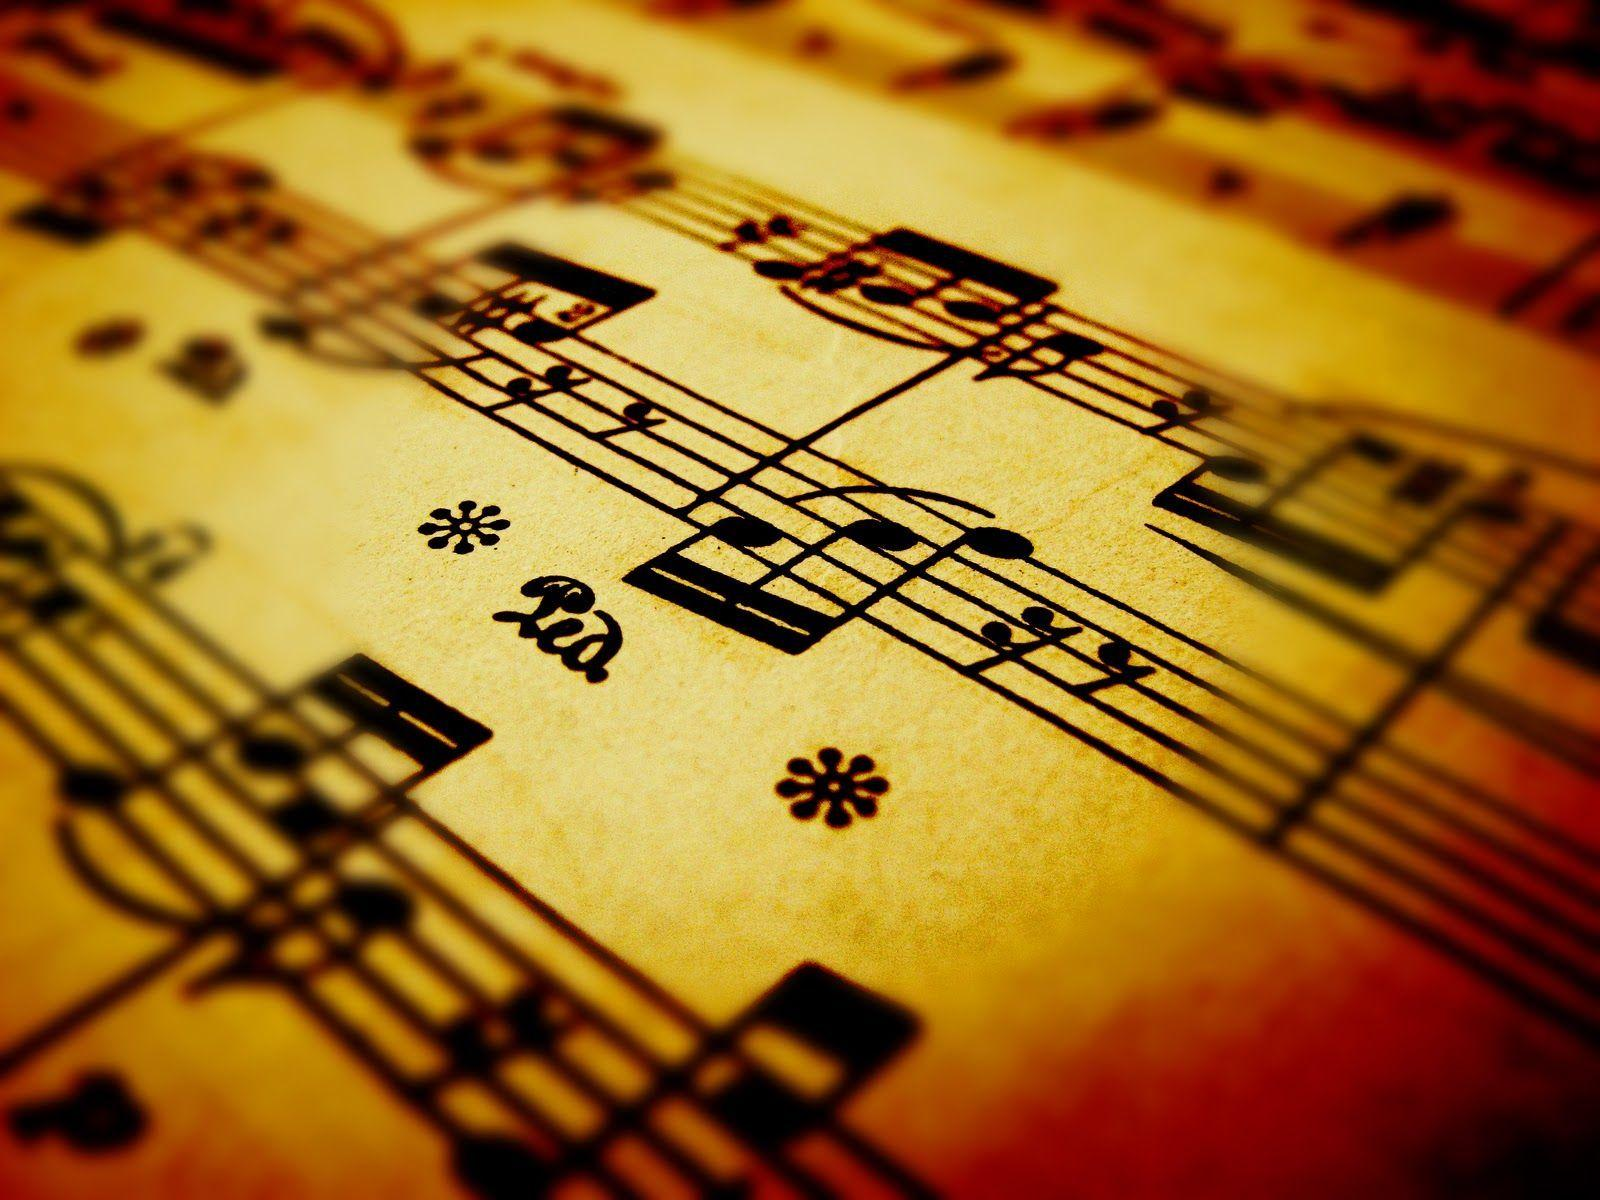 Music Note Desktop Backgrounds Hd Backgrounds 8 HD Wallpapers